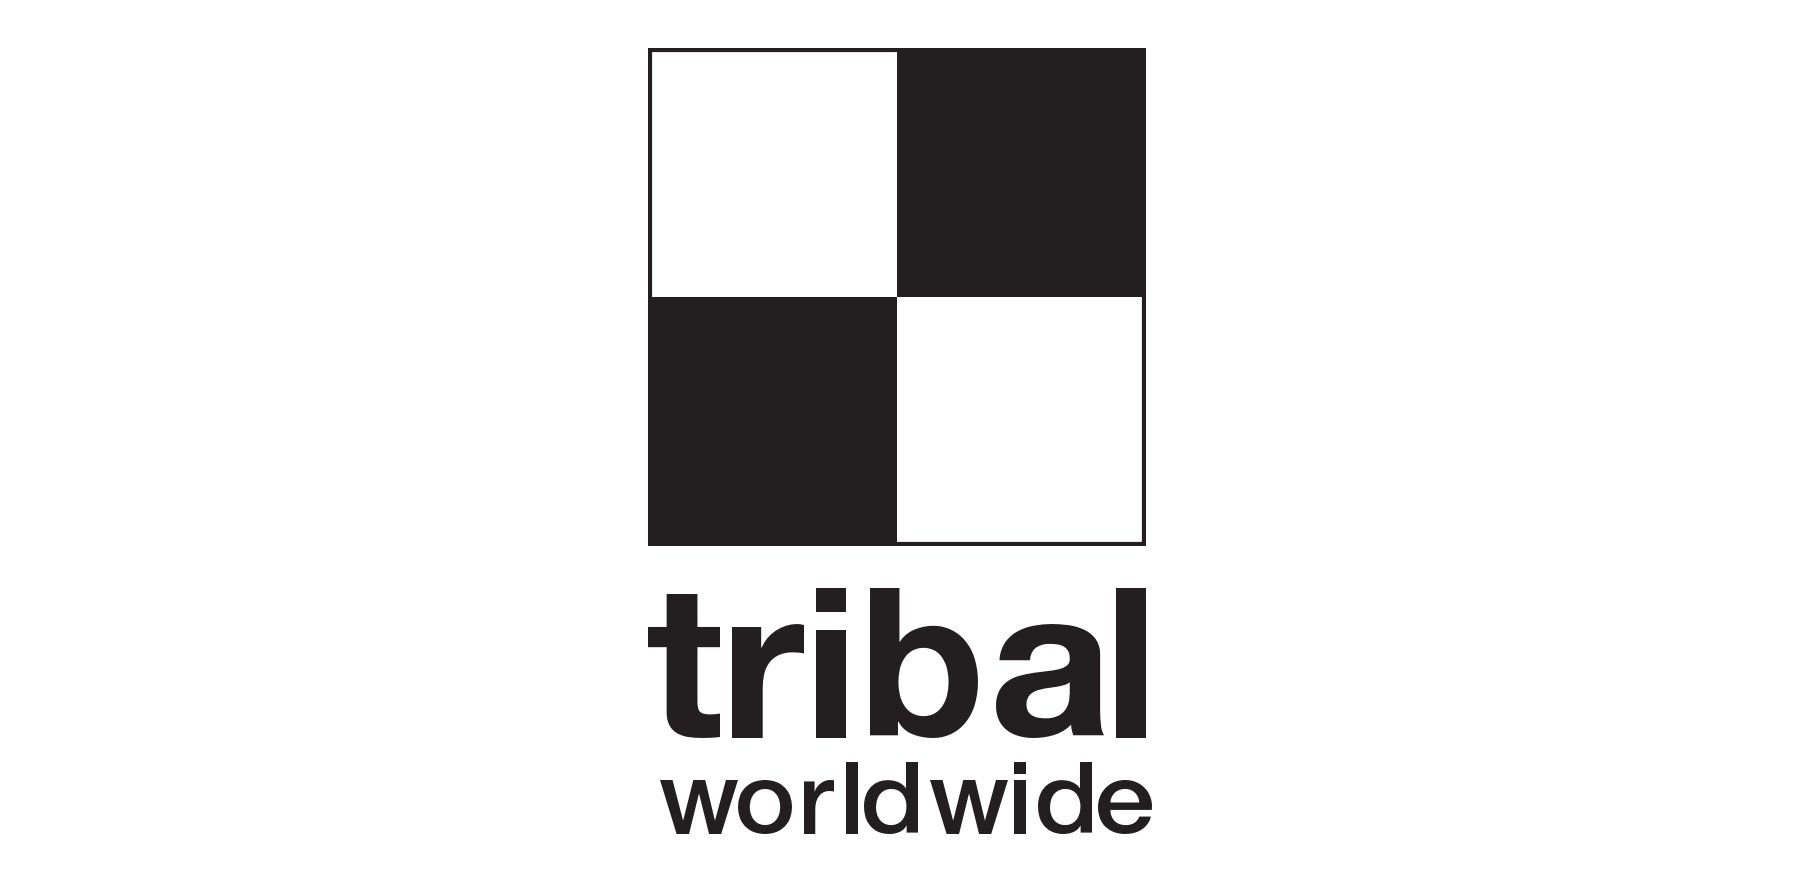 Tribal Worldwide is using Storyblok